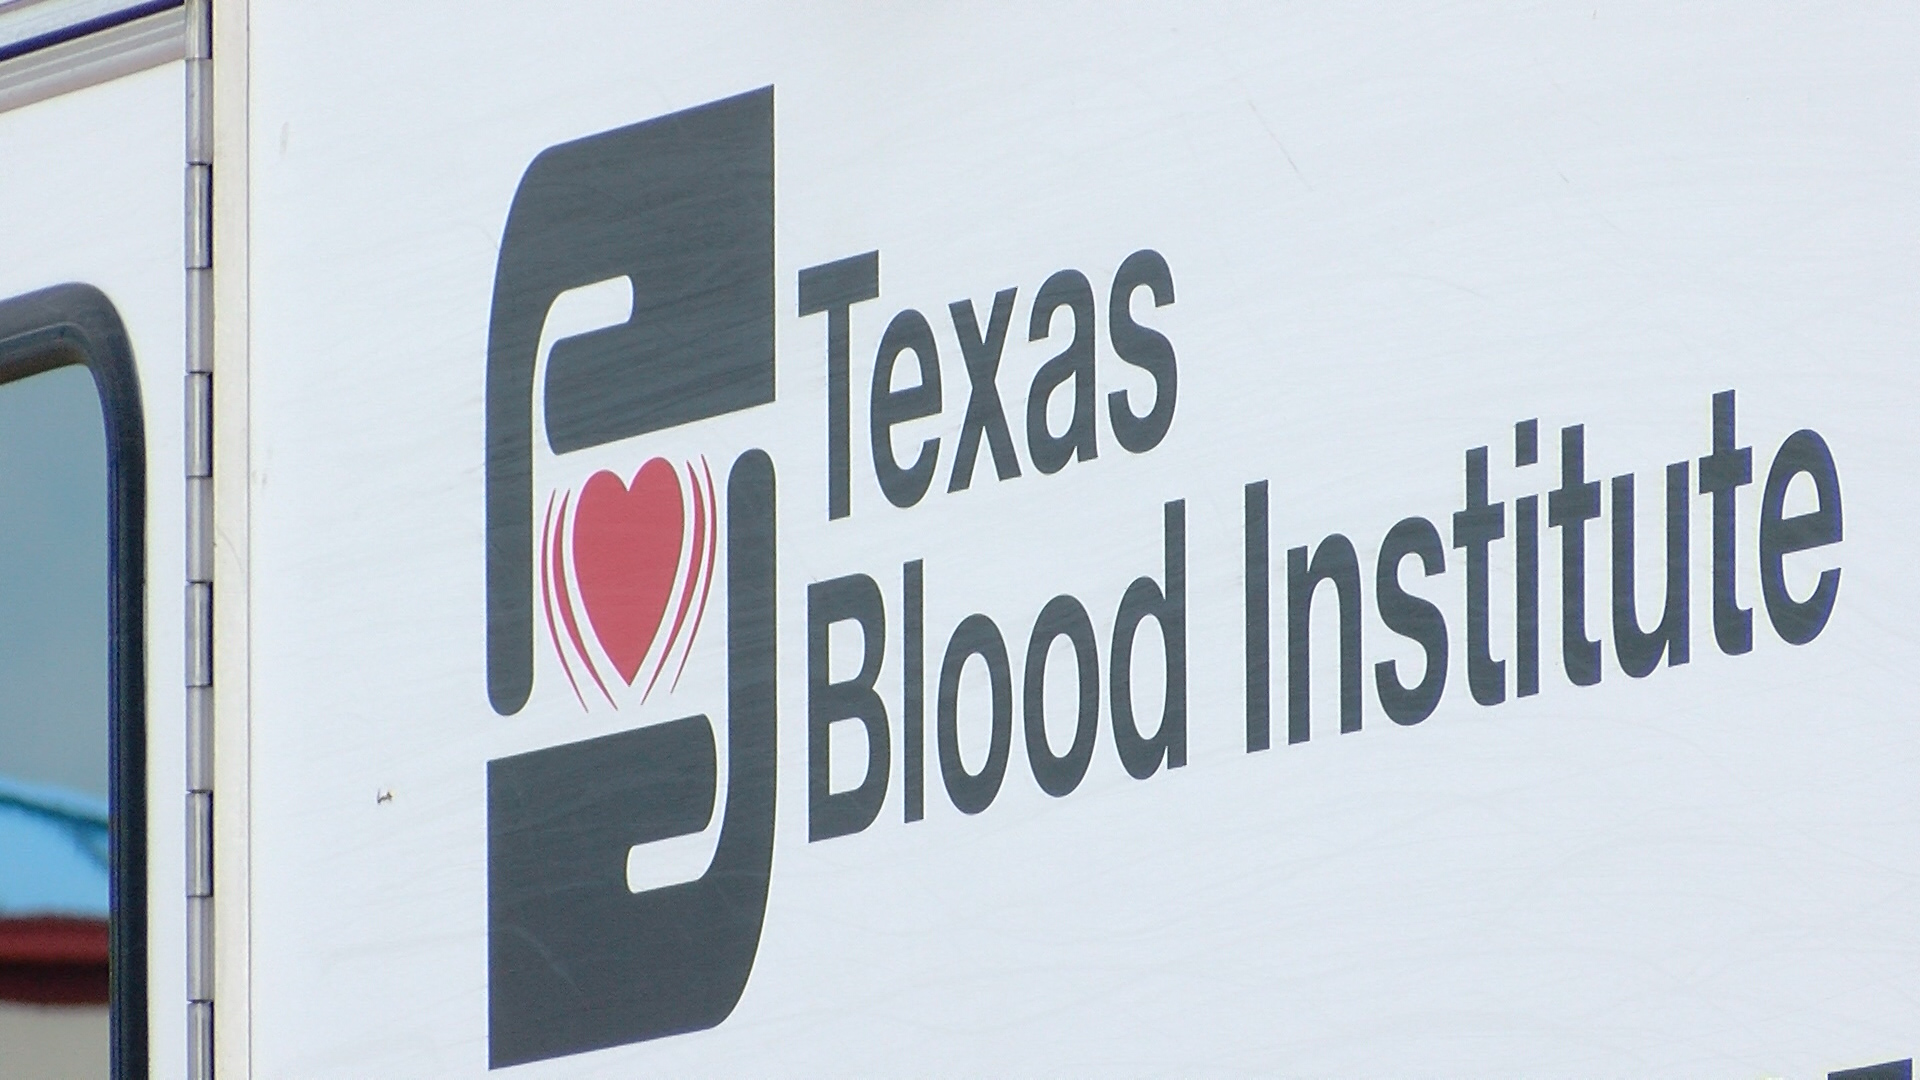 Blood banks are always looking for donations year round but especially in the summer.